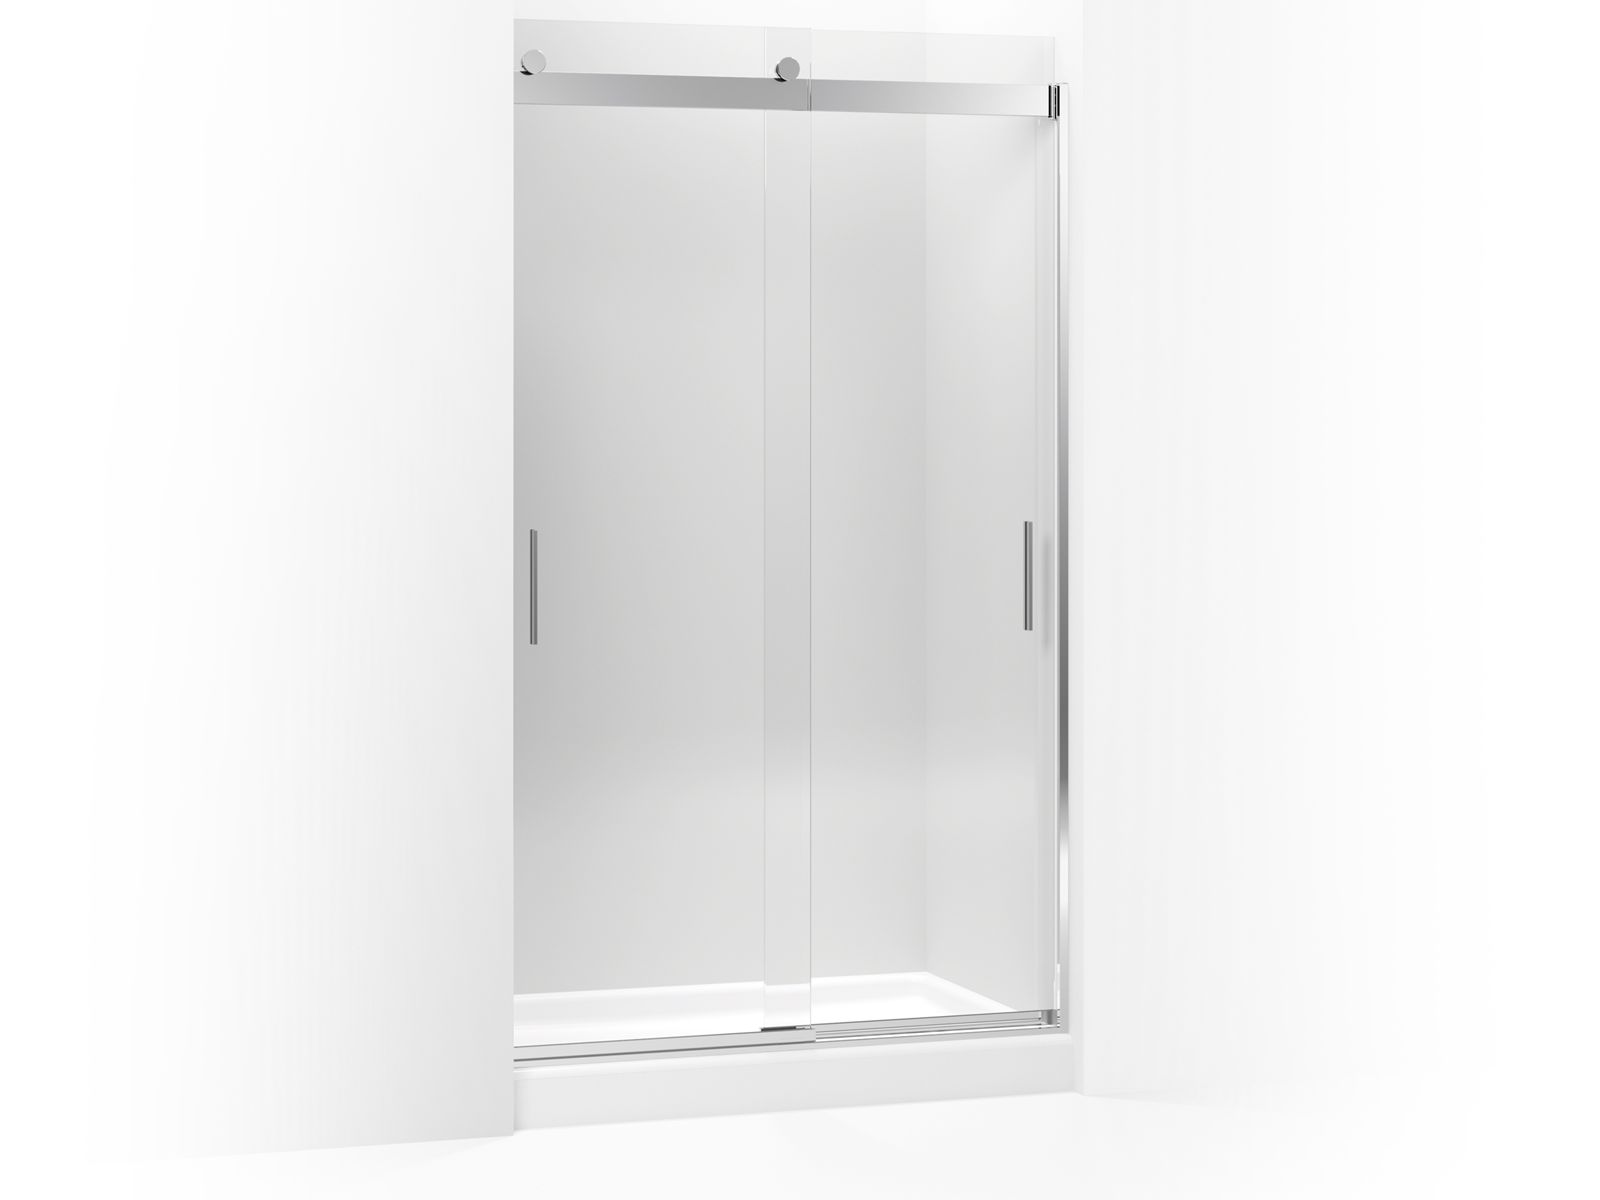 "Levity™ Sliding shower door with handle and 3/8"" crystal clear glass"